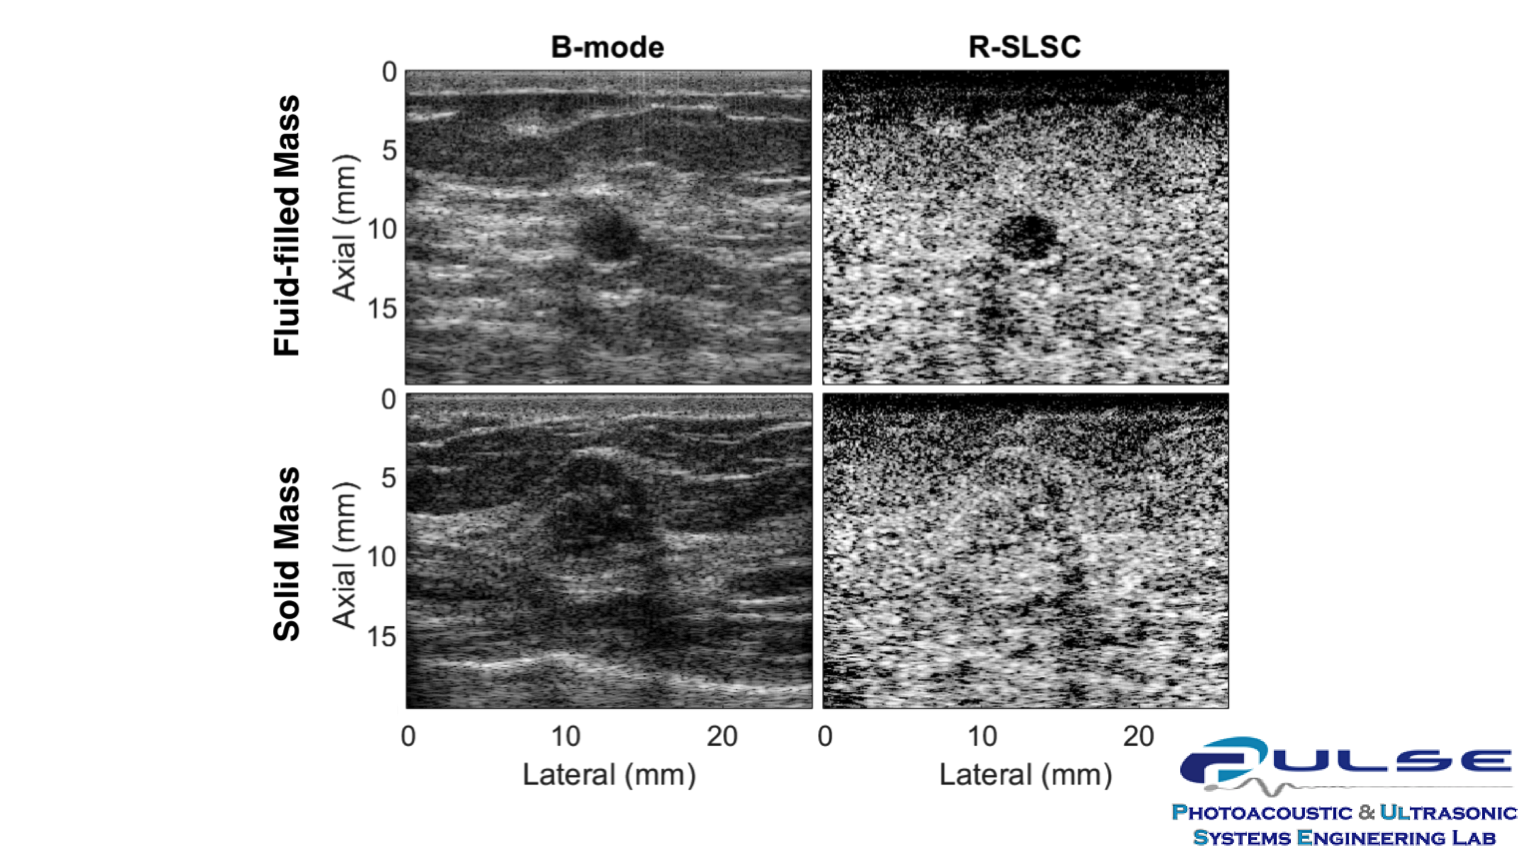 Example images from Muyinatu Bell's PULSE Lab, demonstrating the ability of Robust Short-Lag Spatial Coherence (R-SLSC) beamforming, a technique developed in the PULSE Lab, to differentiate between fluid-filled and solid breast masses. The top row shows a fluid-filled cyst from one patient treated at the Johns Hopkins Hospital, while the bottom row shows a solid cancerous tumor from another patient. The standard B-mode ultrasound imaging method used in breast clinics today (left) shows the two masses as similarly darker than the surrounding tissue. However, the R-SLSC images (right) show improved contrast in the benign fluid-filled cyst and solid content in the malignant mass.